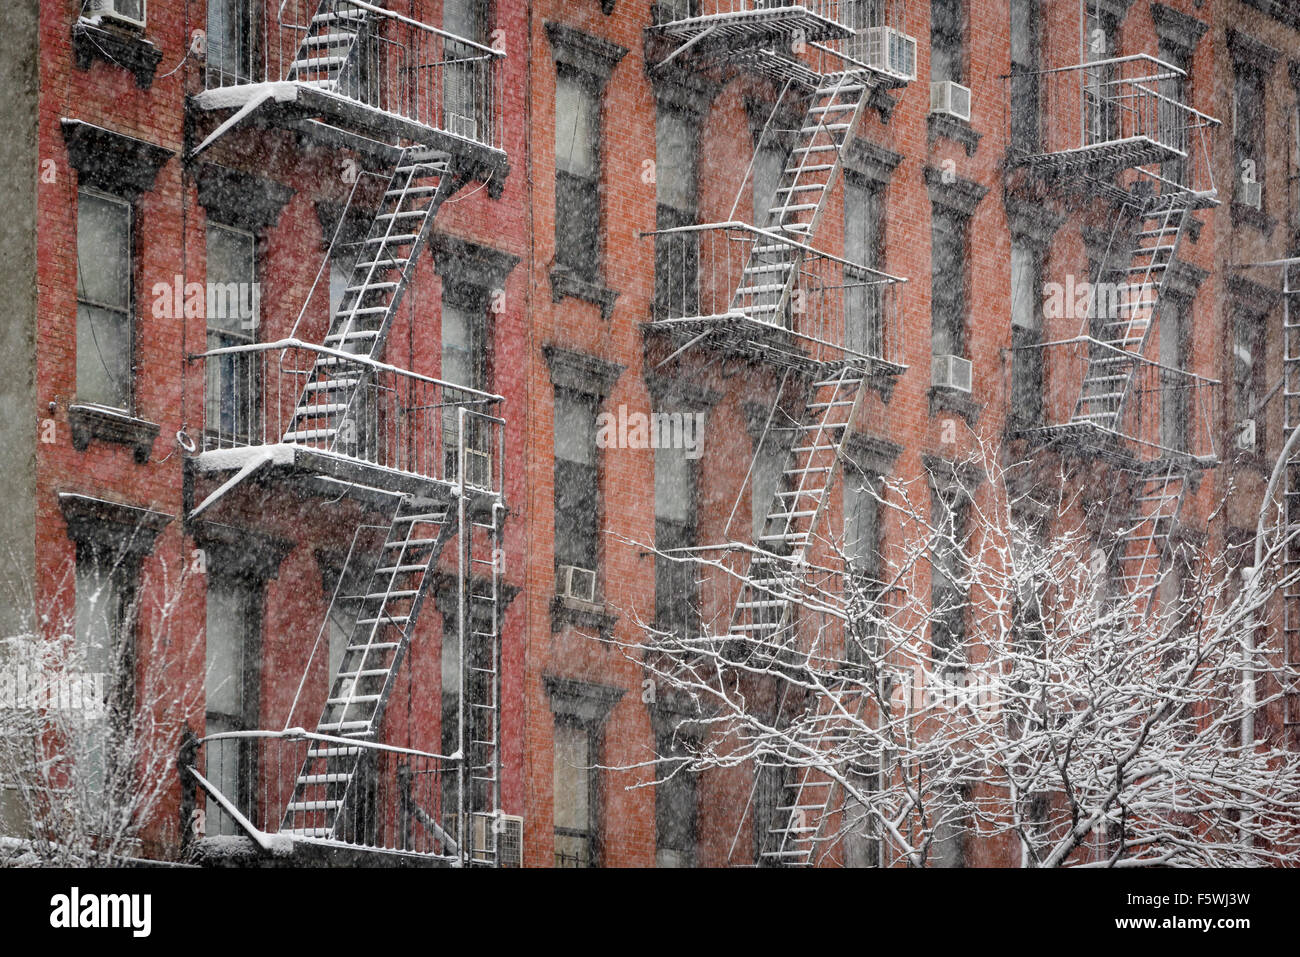 Facade of Chelsea brick building with fire escapes covered in snow during a winter snowfall, Manhattan, New York - Stock Image